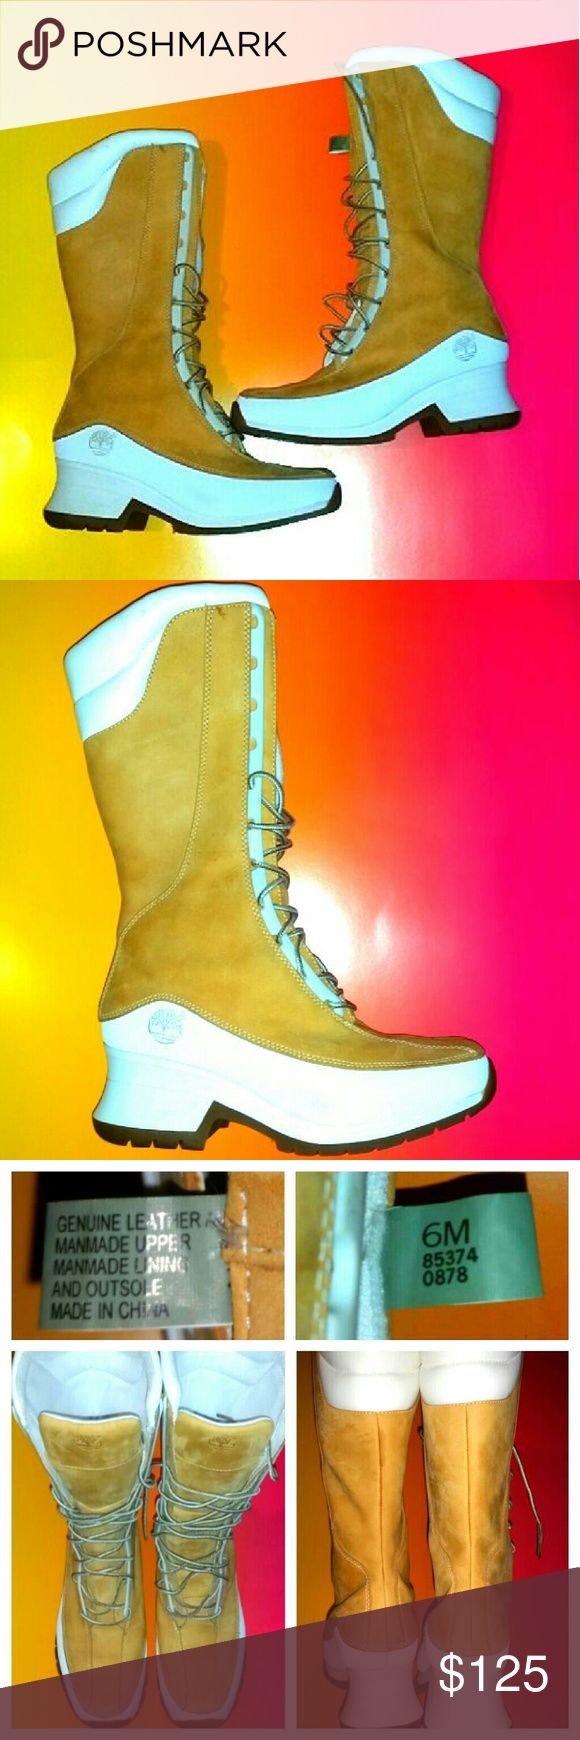 Timberland🎆SALE!!🎆 NWOB Timberland Lase Up Boots, white and tan, NWOB, Size 6, Beautiful✔Quality Leather, Never worn. LOVE IT but Unfortunately a little too small for me. Shoes Lace Up Boots